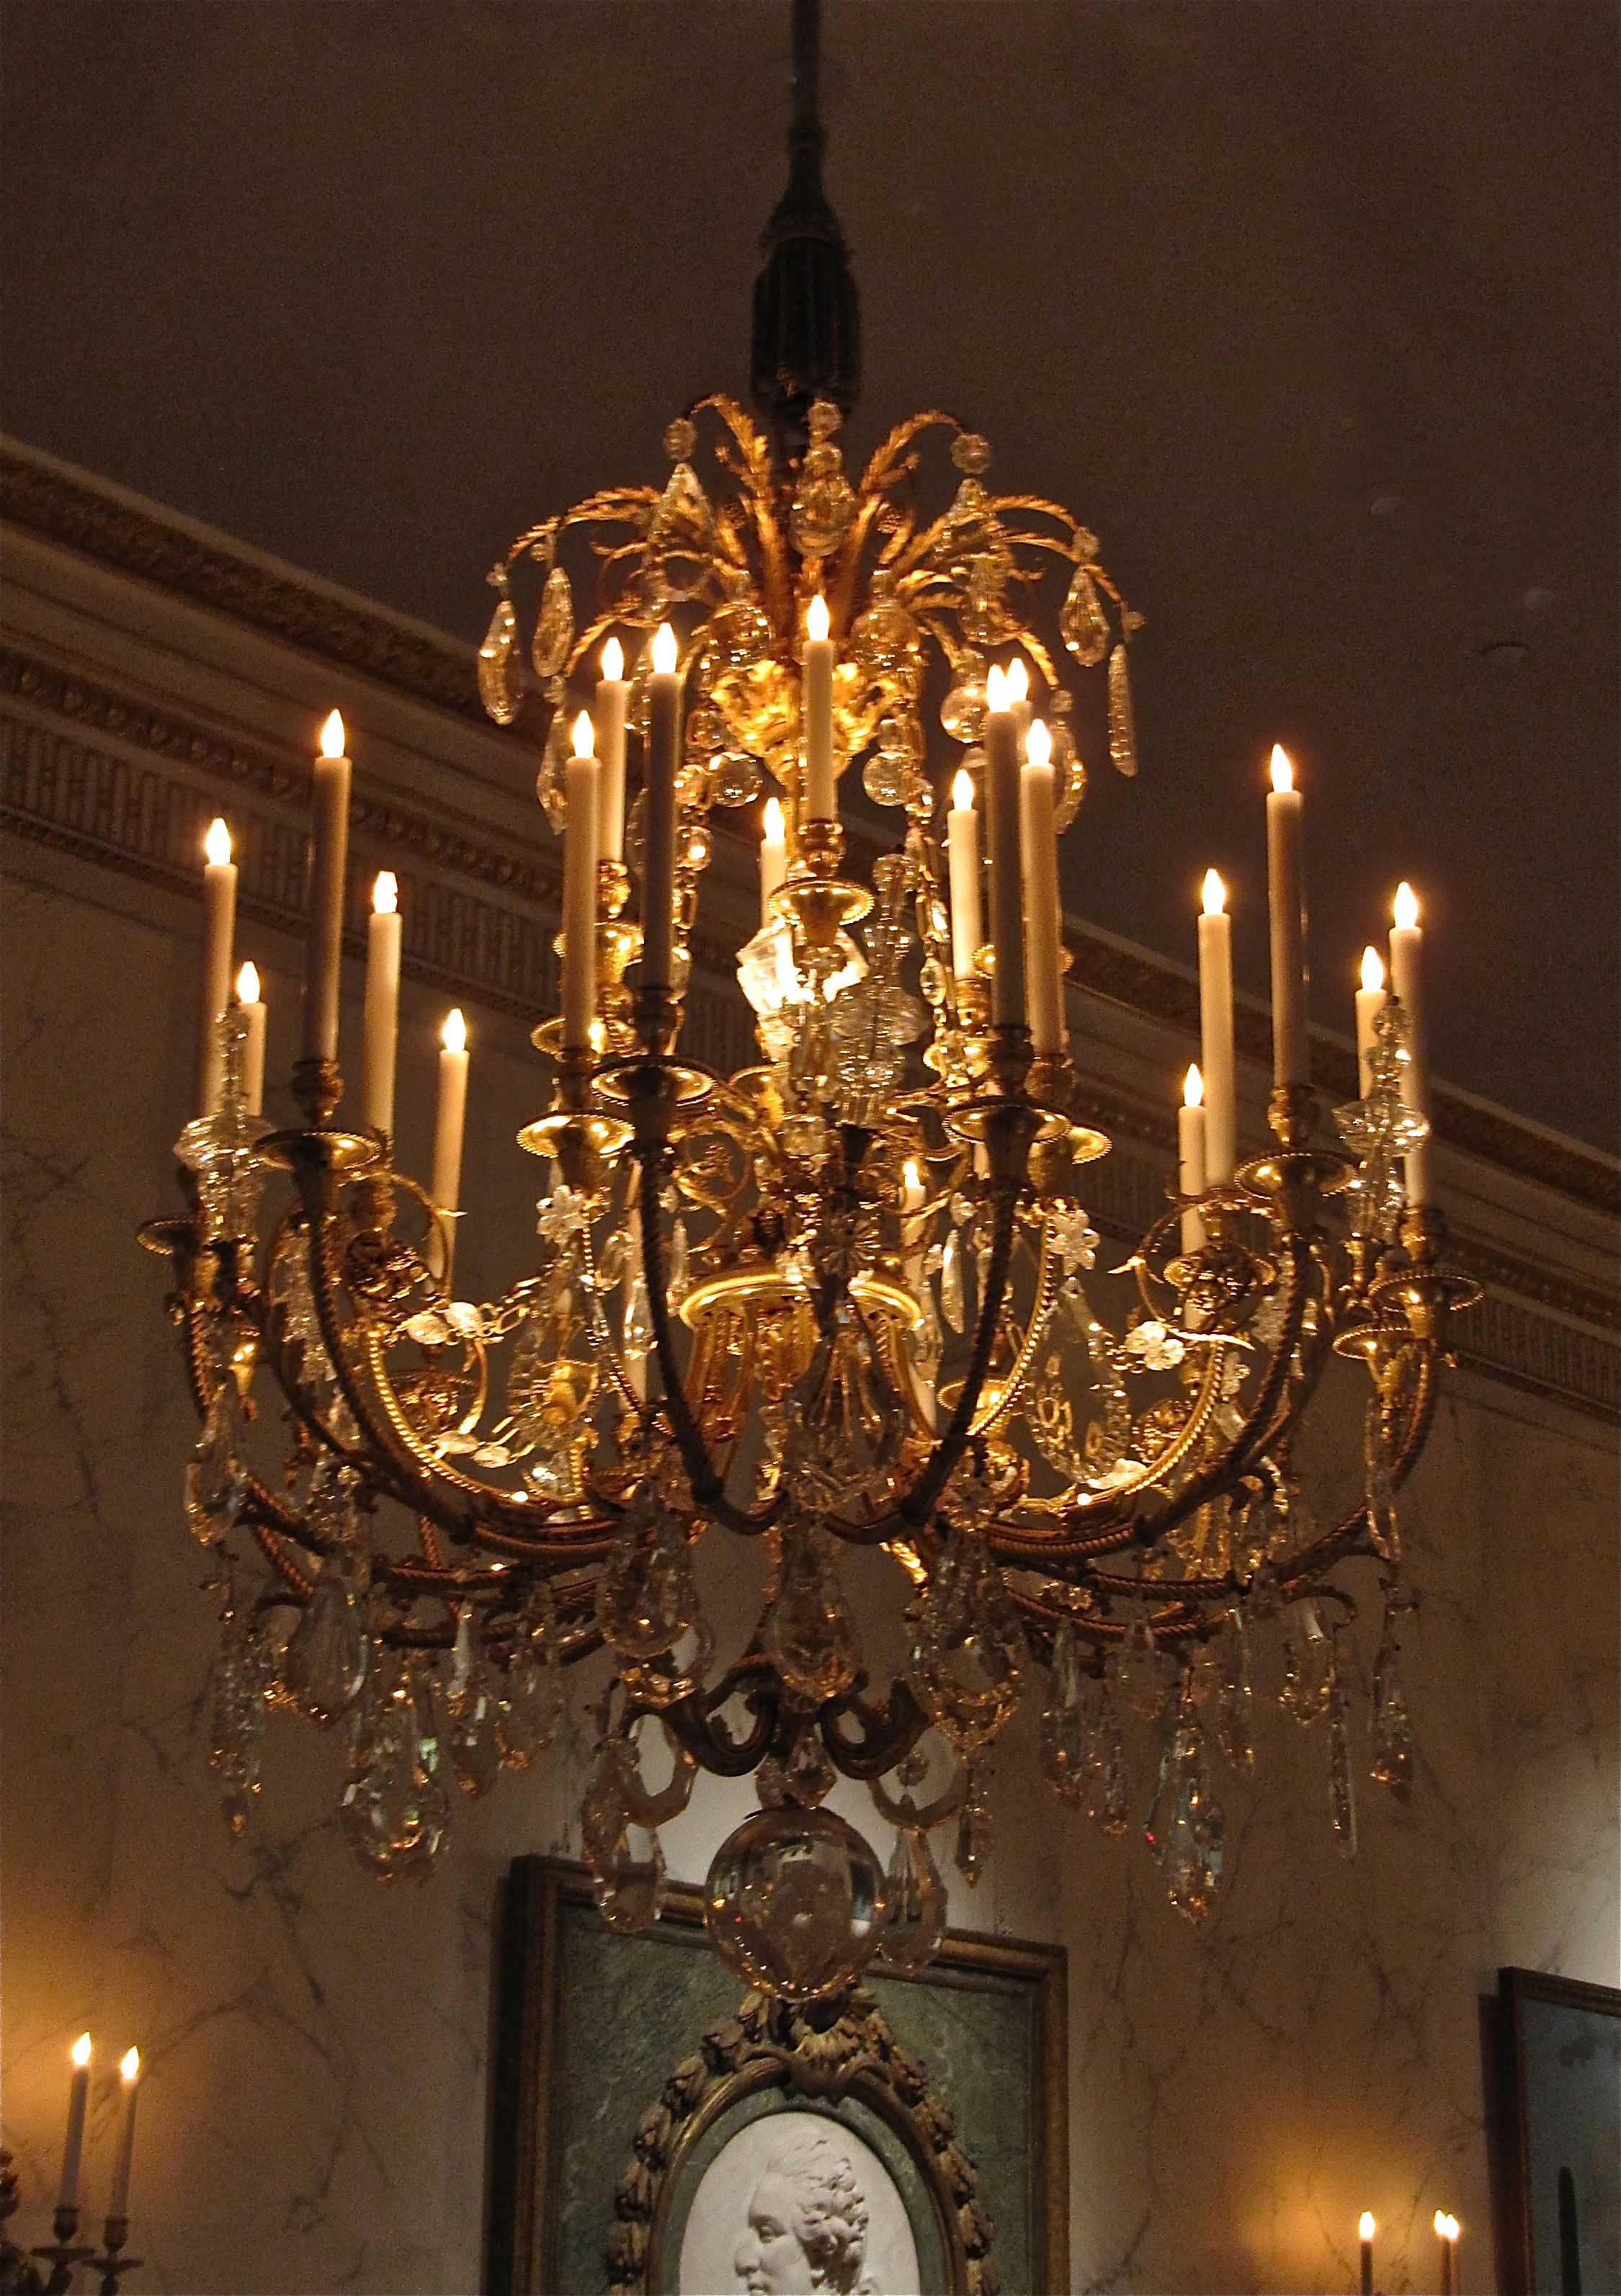 The french hall chandelier at the met museum nyc one of a pair the french hall chandelier at the met museum nyc one of aloadofball Gallery